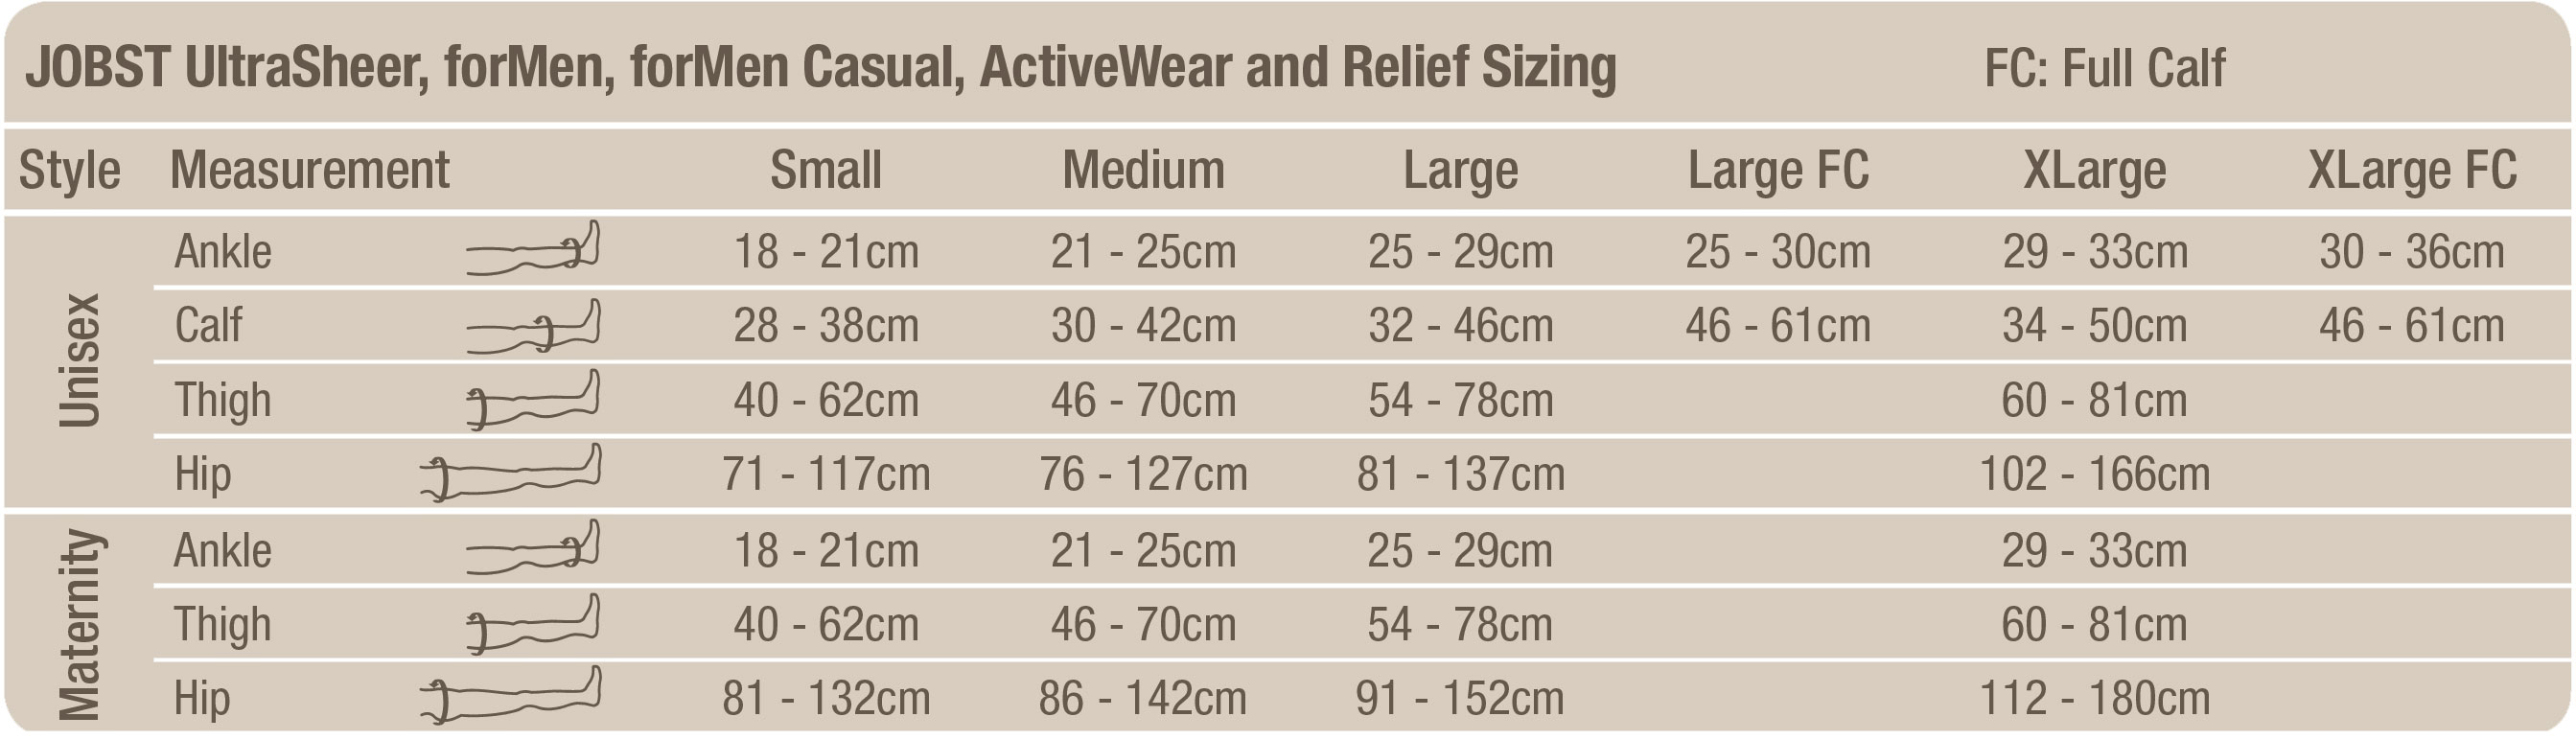 size-chart-jobst-selection-guide-new.jpg